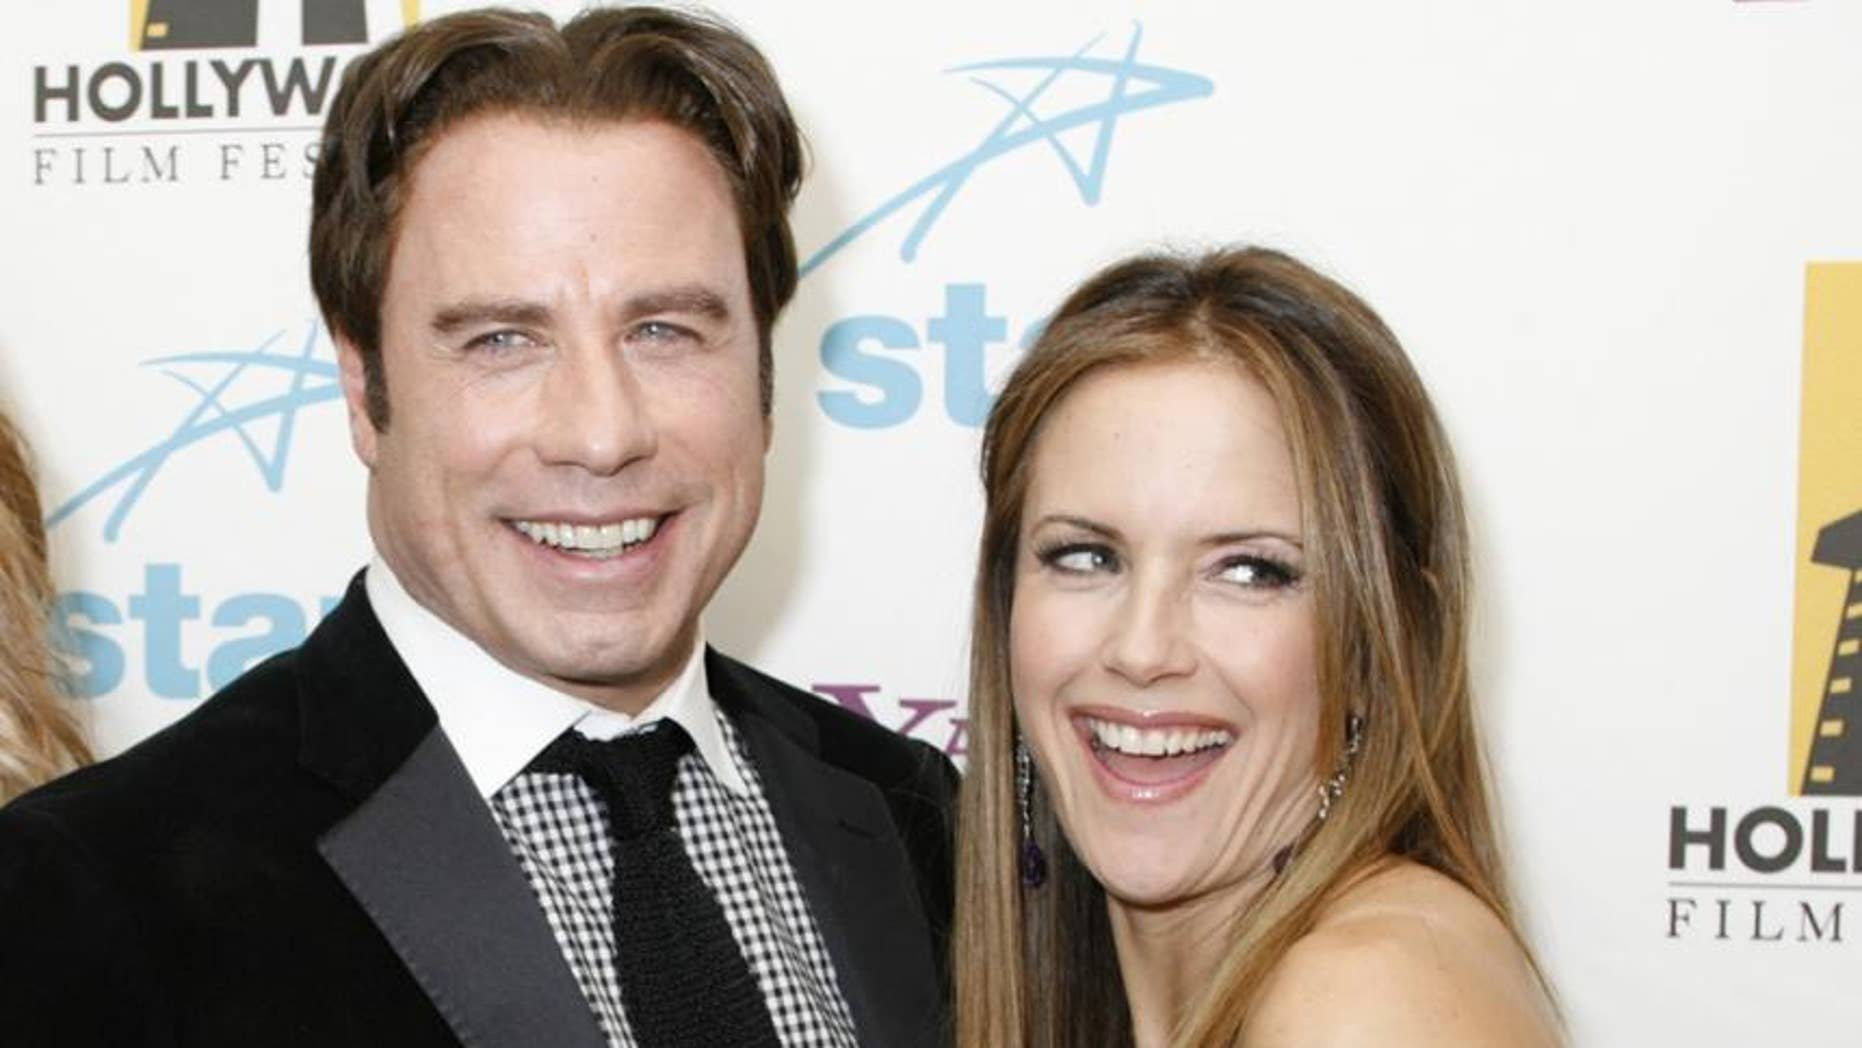 Kelly Preston her favorite parts about being married to long-time actor, John Travolta.